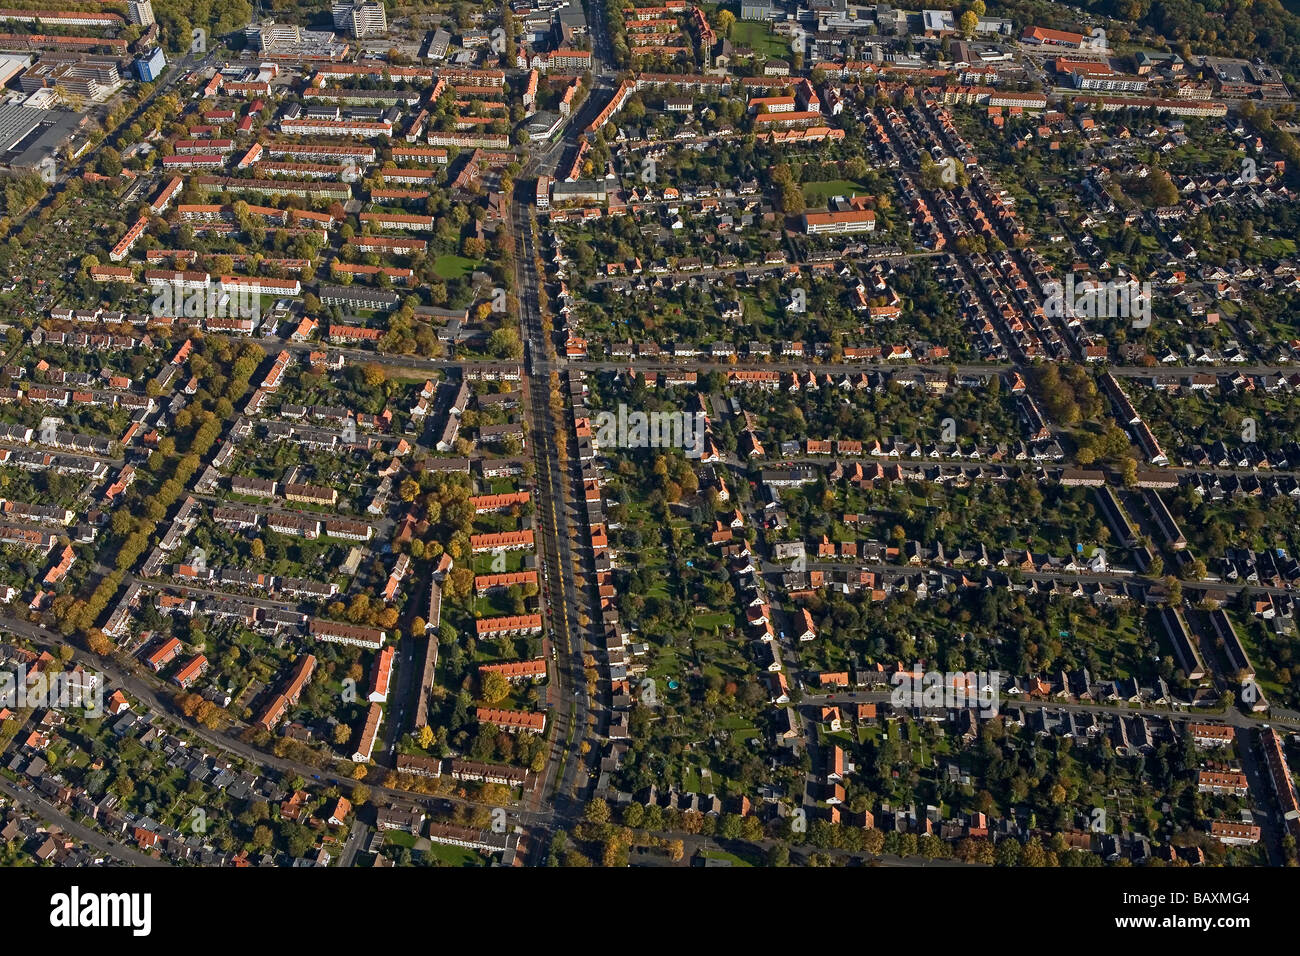 Seelhorster Garten Hannover Aerial View Of Housing Hanover Lower Saxony Northern Germany